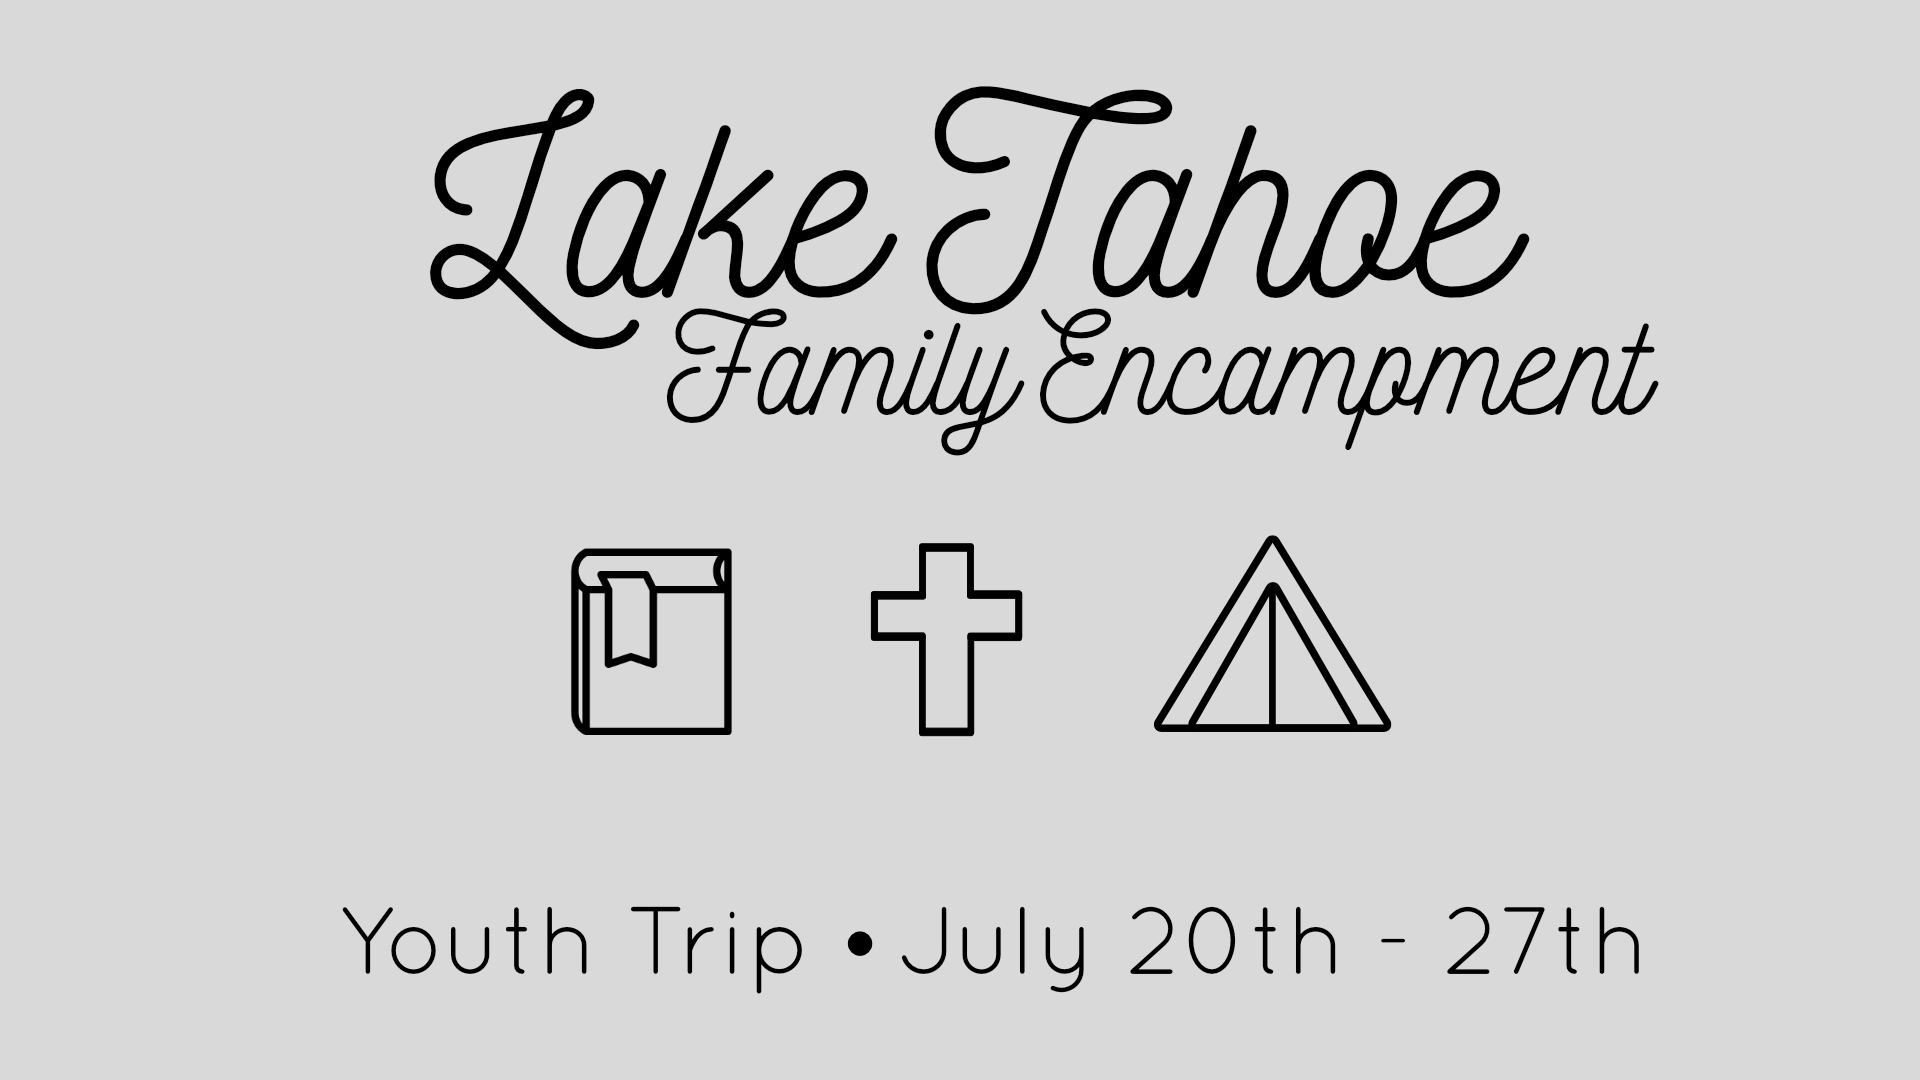 Registration  - We are headed to Tahoe again this year! This trip has been the highlight of the year for so many of us the past two years. This year we will be gone an entire week, Friday to Friday. Below you will find the details of the trip. We are limited on space so the first to sign up and pay will have their names on the list. We will also have a waiting list once we get past our limit. Let Joel know if you have any questions.Registration opens June 6thRegister HERE.